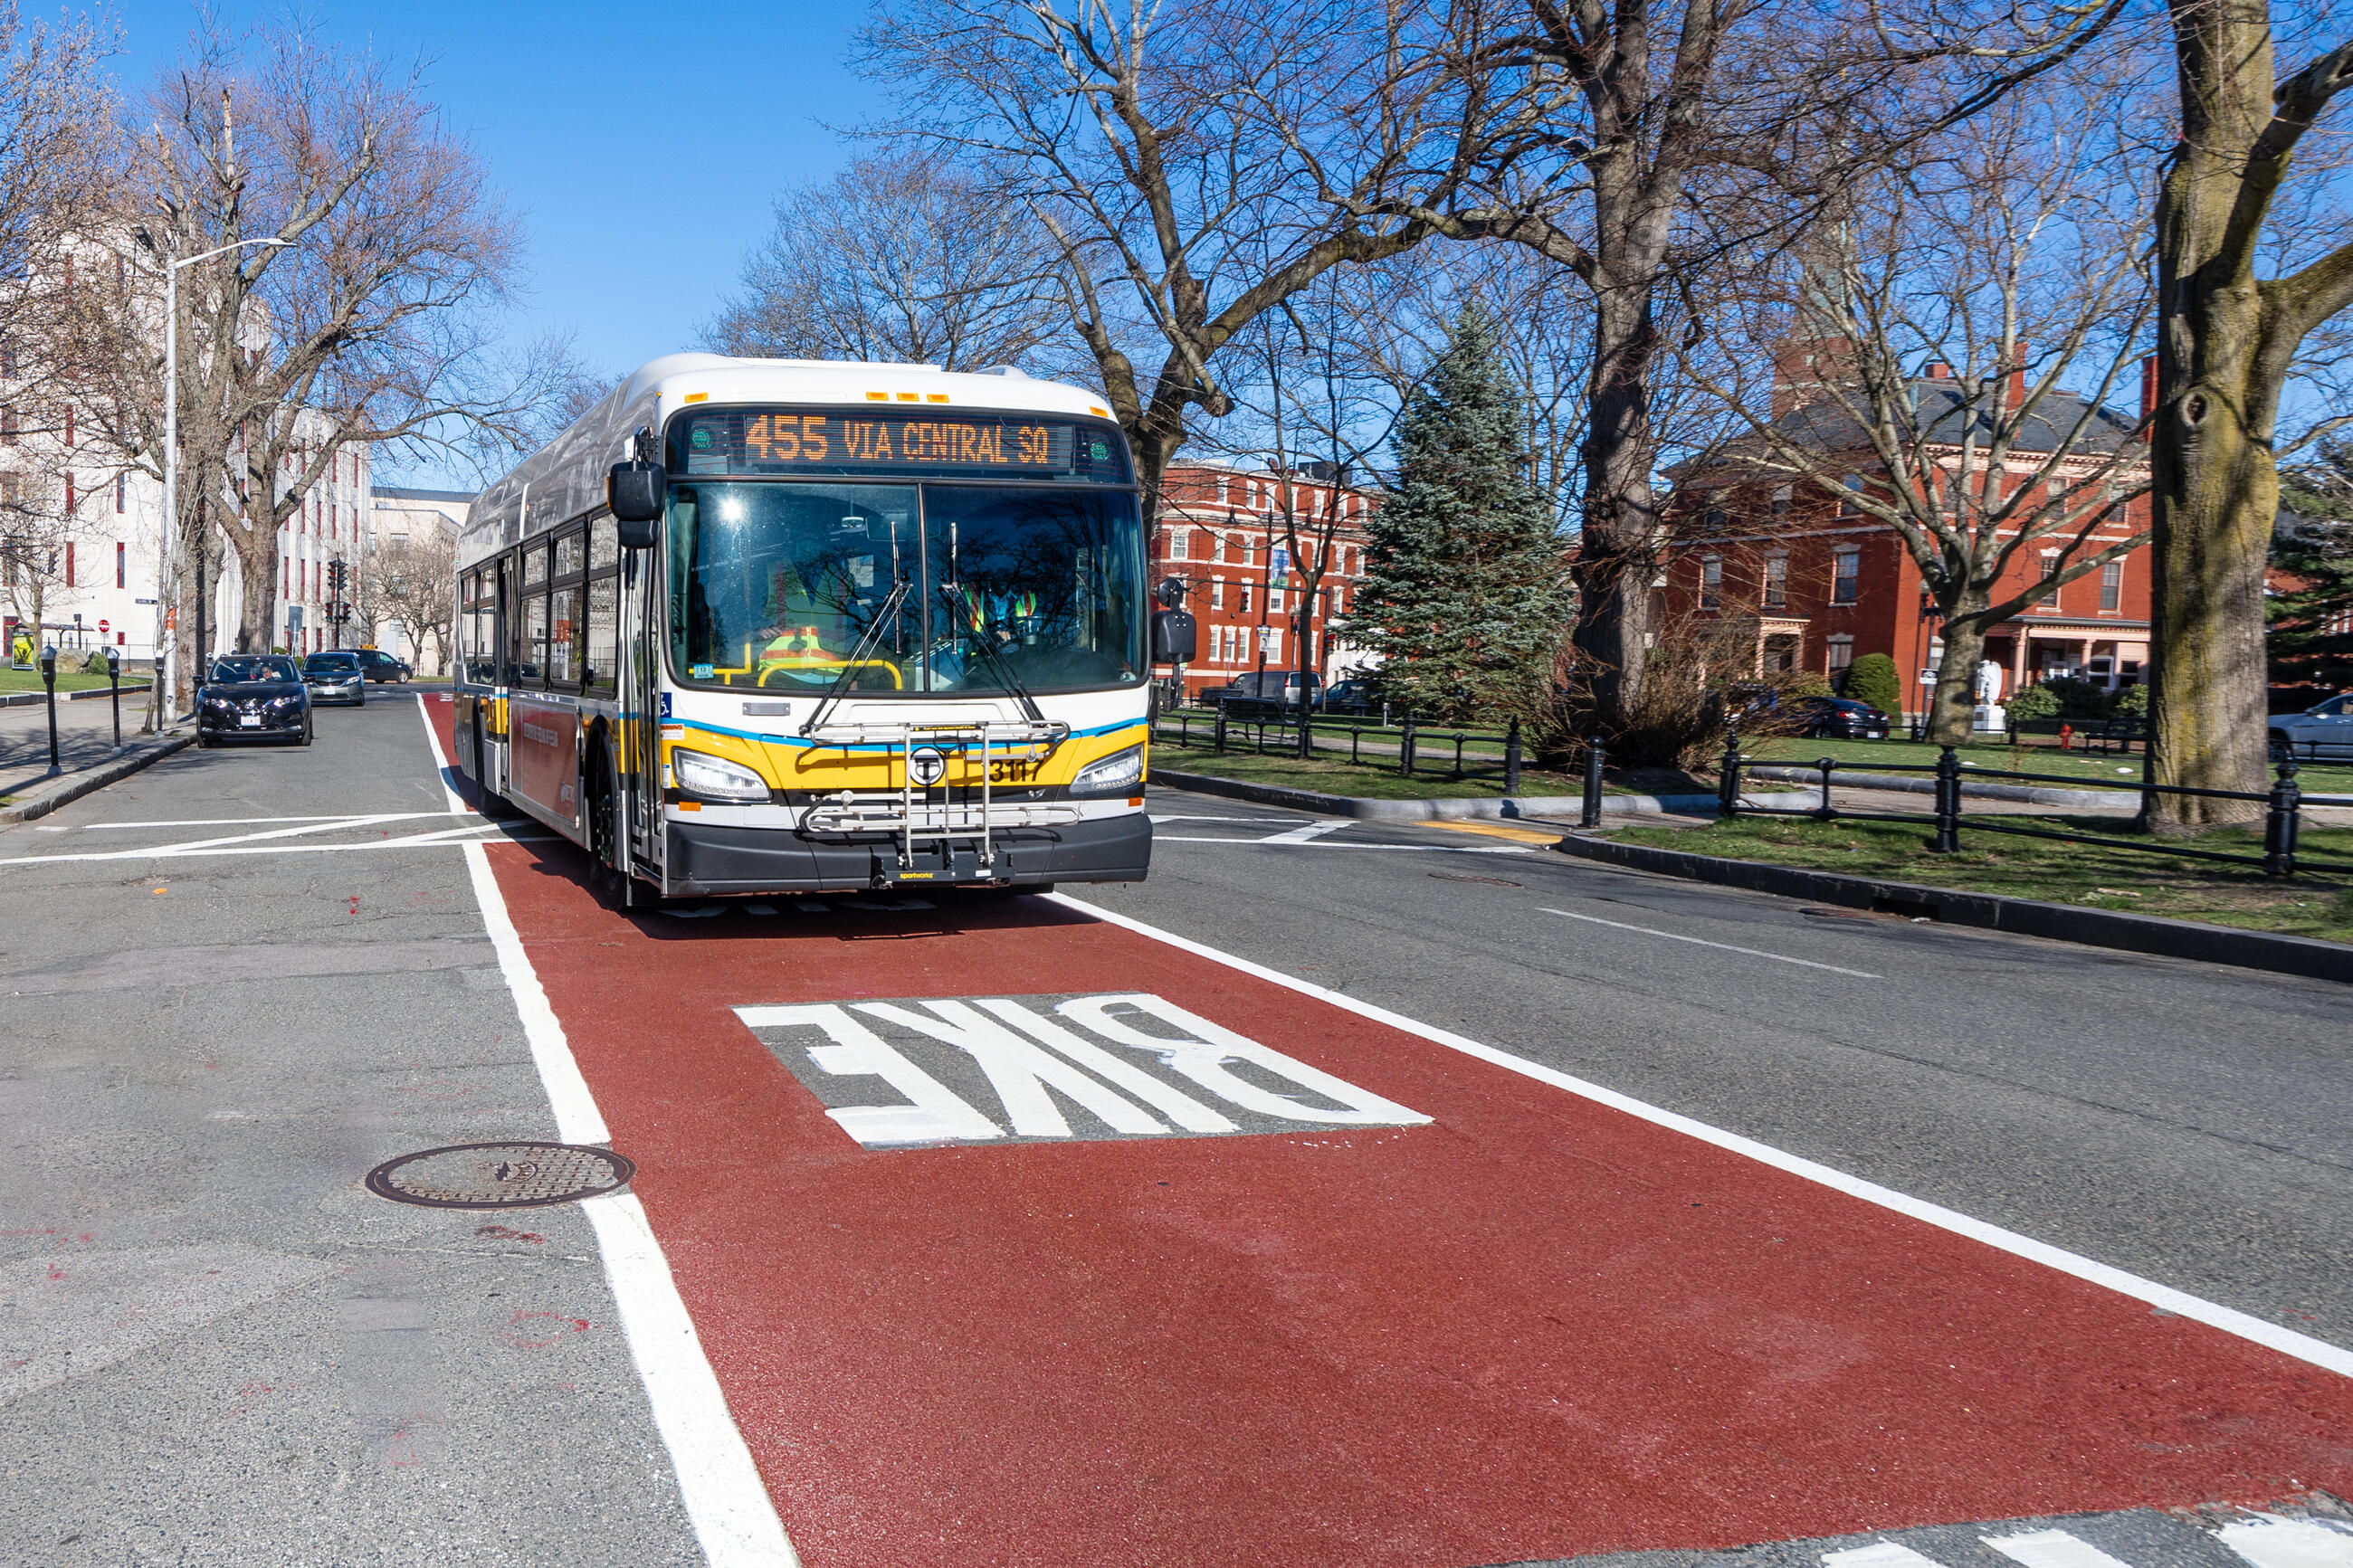 Route 455 bus using the new shared bus-bike lane on North Common St near the Lynn Public Library on April 8, 2021.